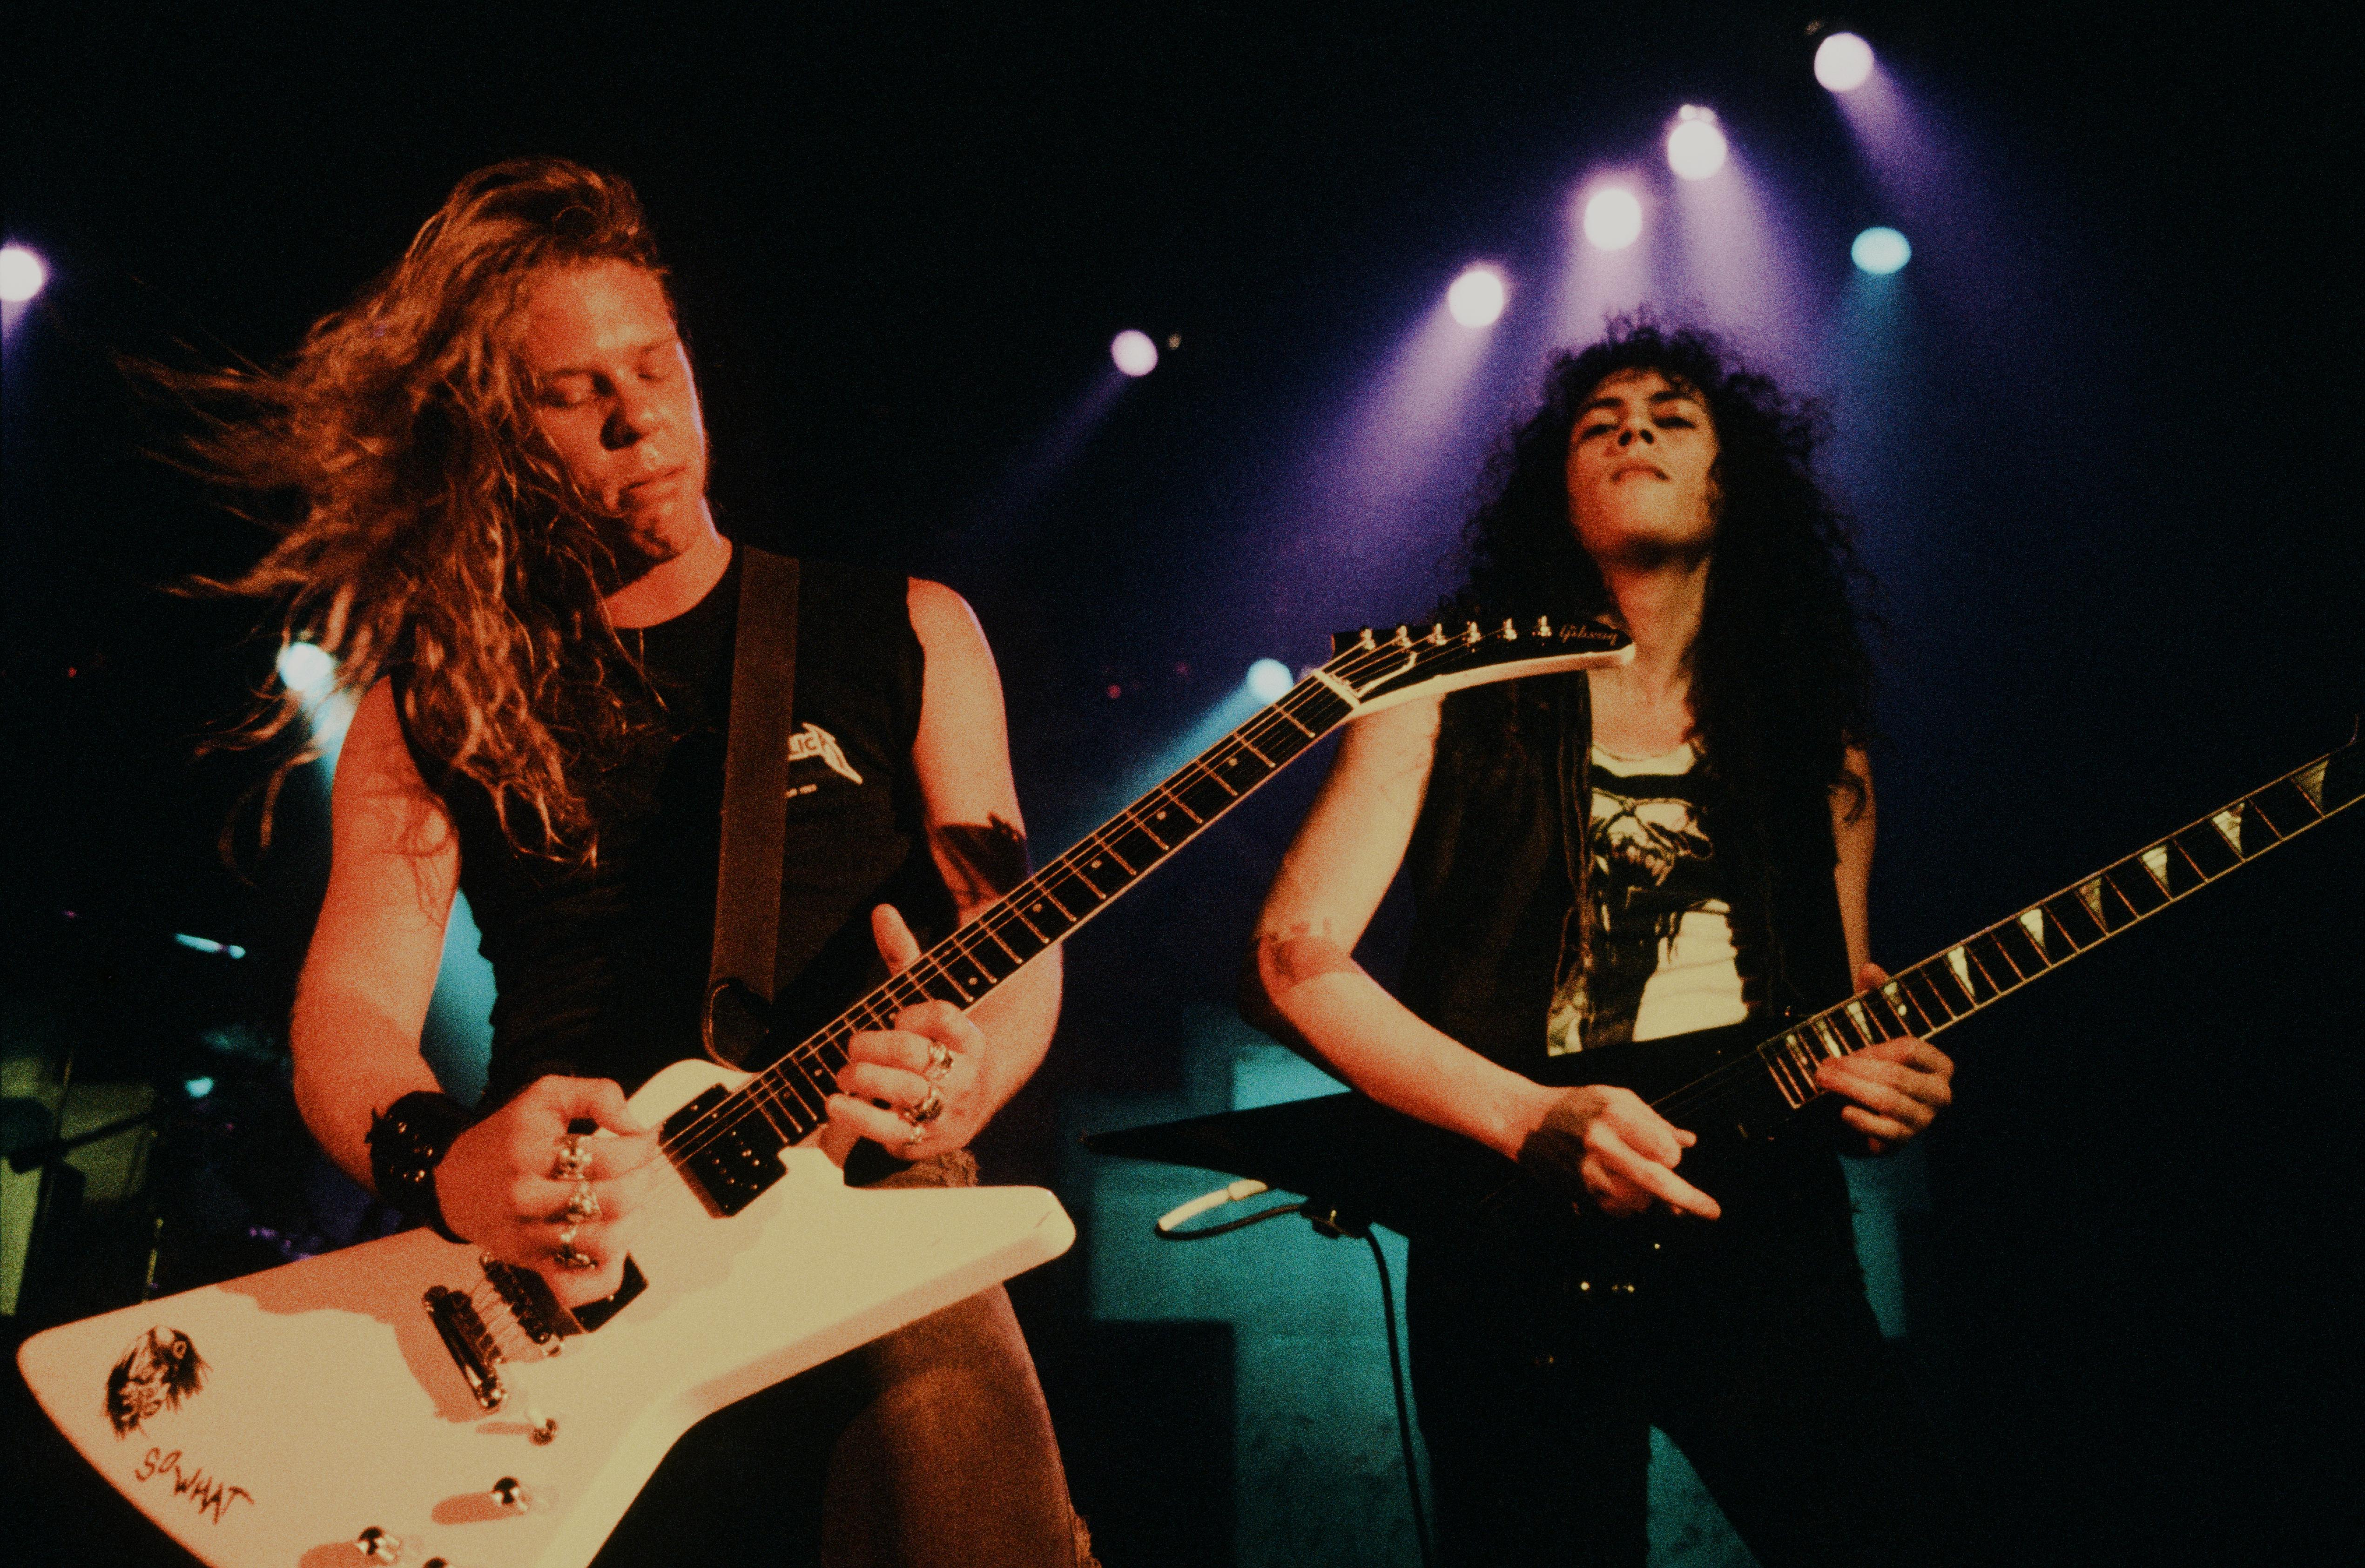 Metallica's 'Master of Puppets': The Story Behind the Cover Art